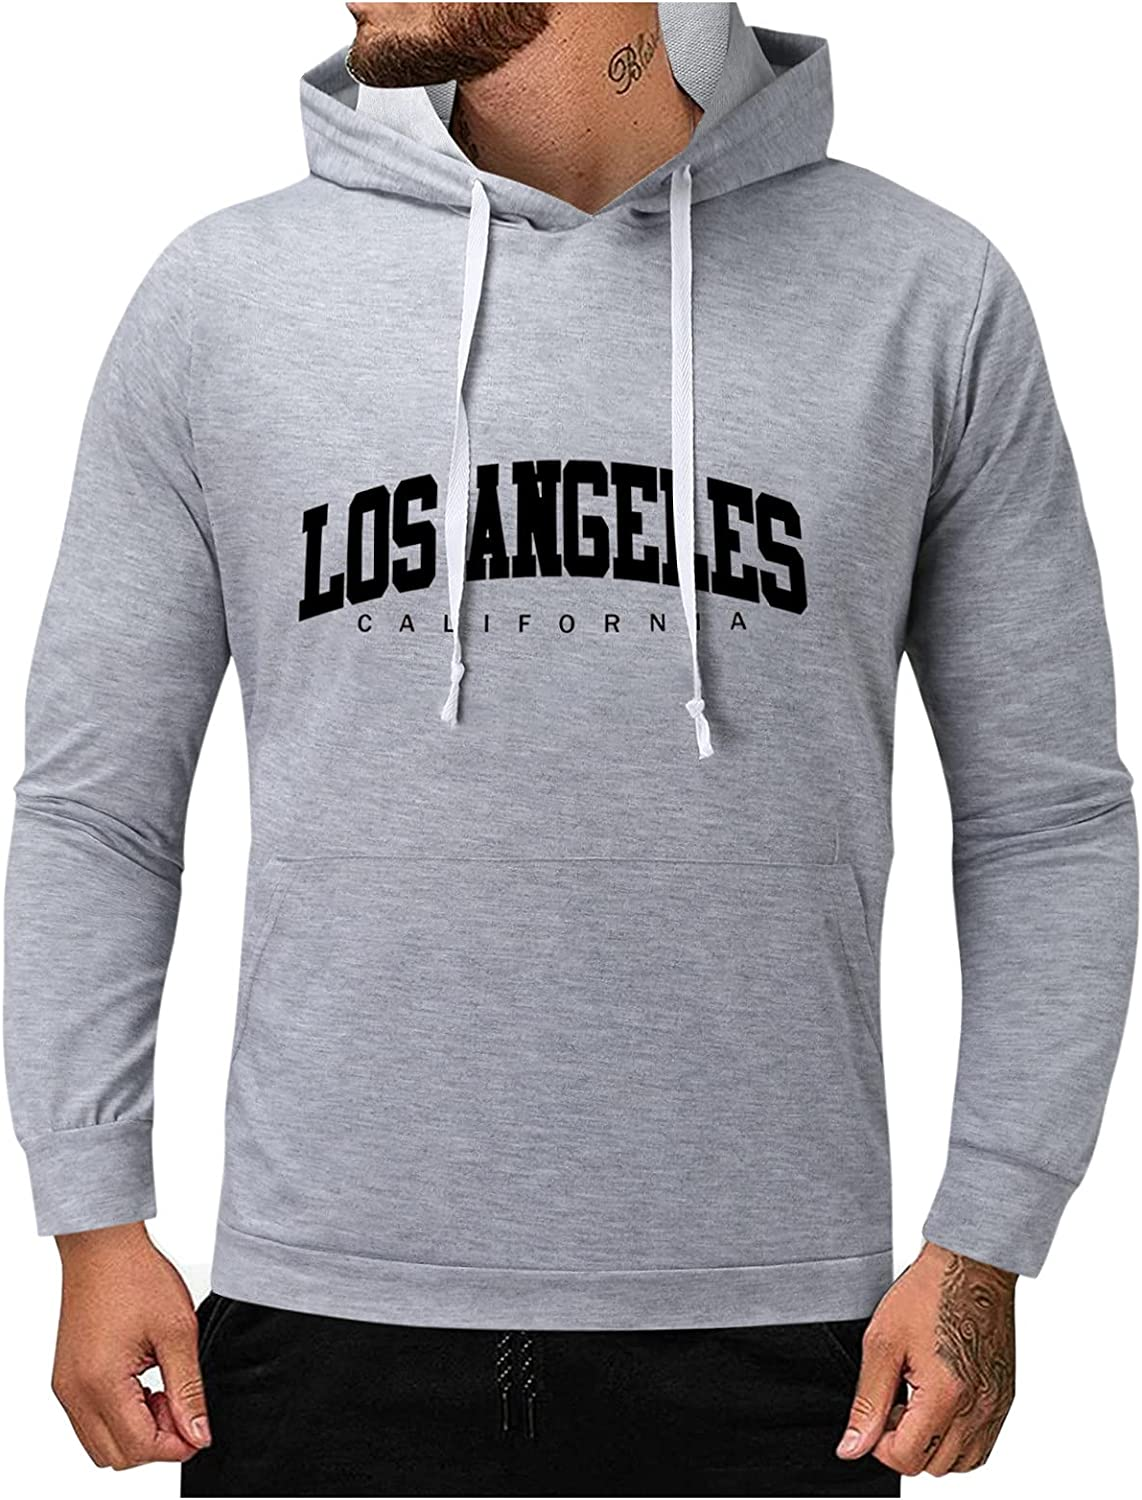 HONGJ Hoodies for Mens, Alpha Letter Print Hooded Sweatshirt Simple Sports Fashion Casual Basic Pullover with Pocket